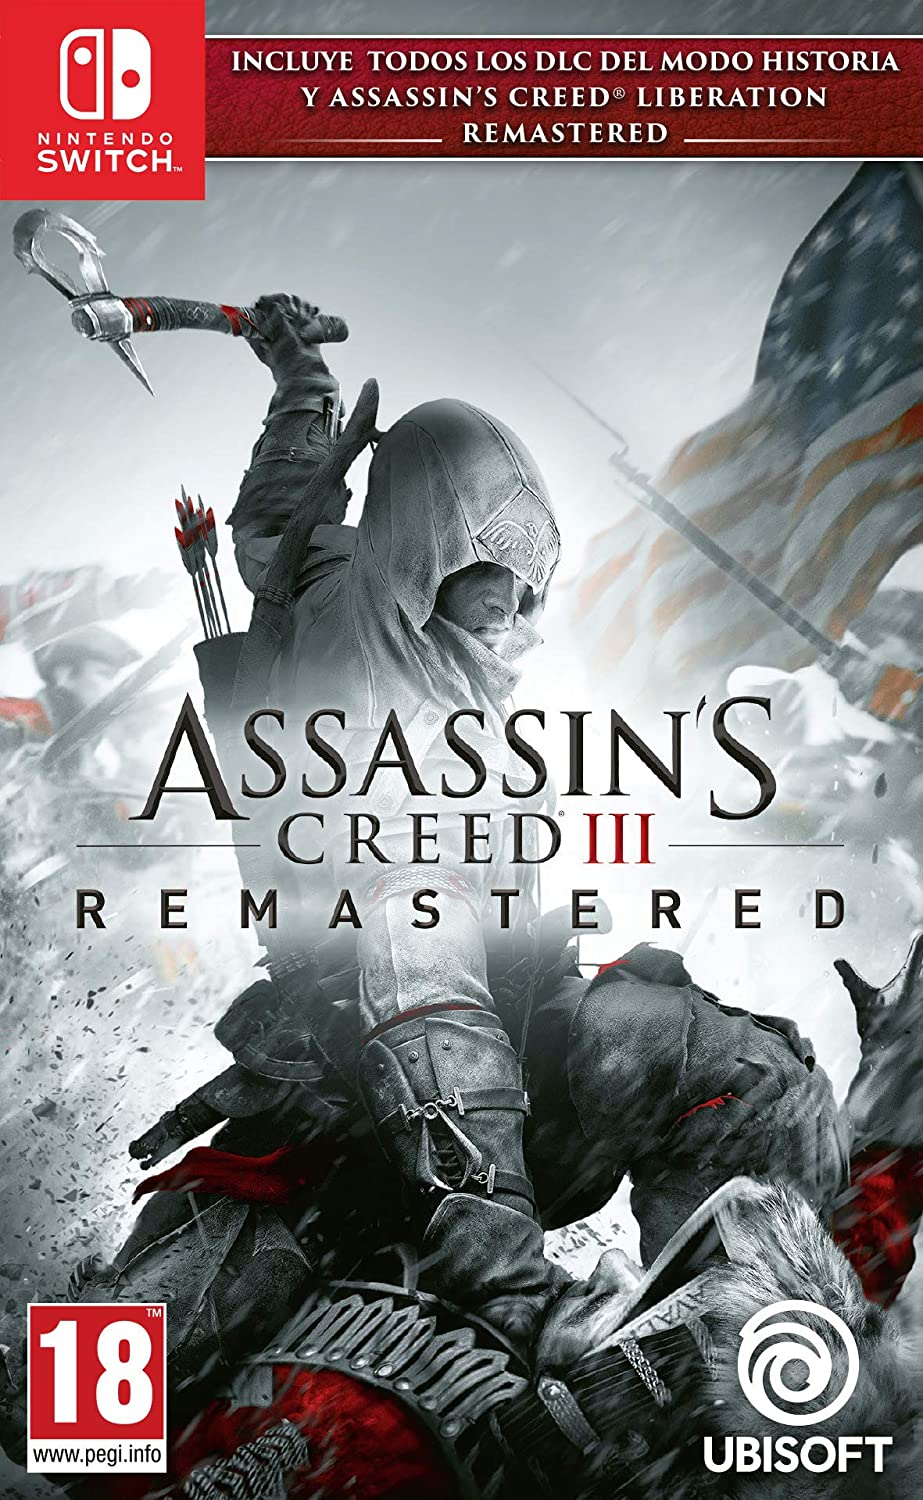 Assassins Creed III Remastered: Amazon.es: Videojuegos